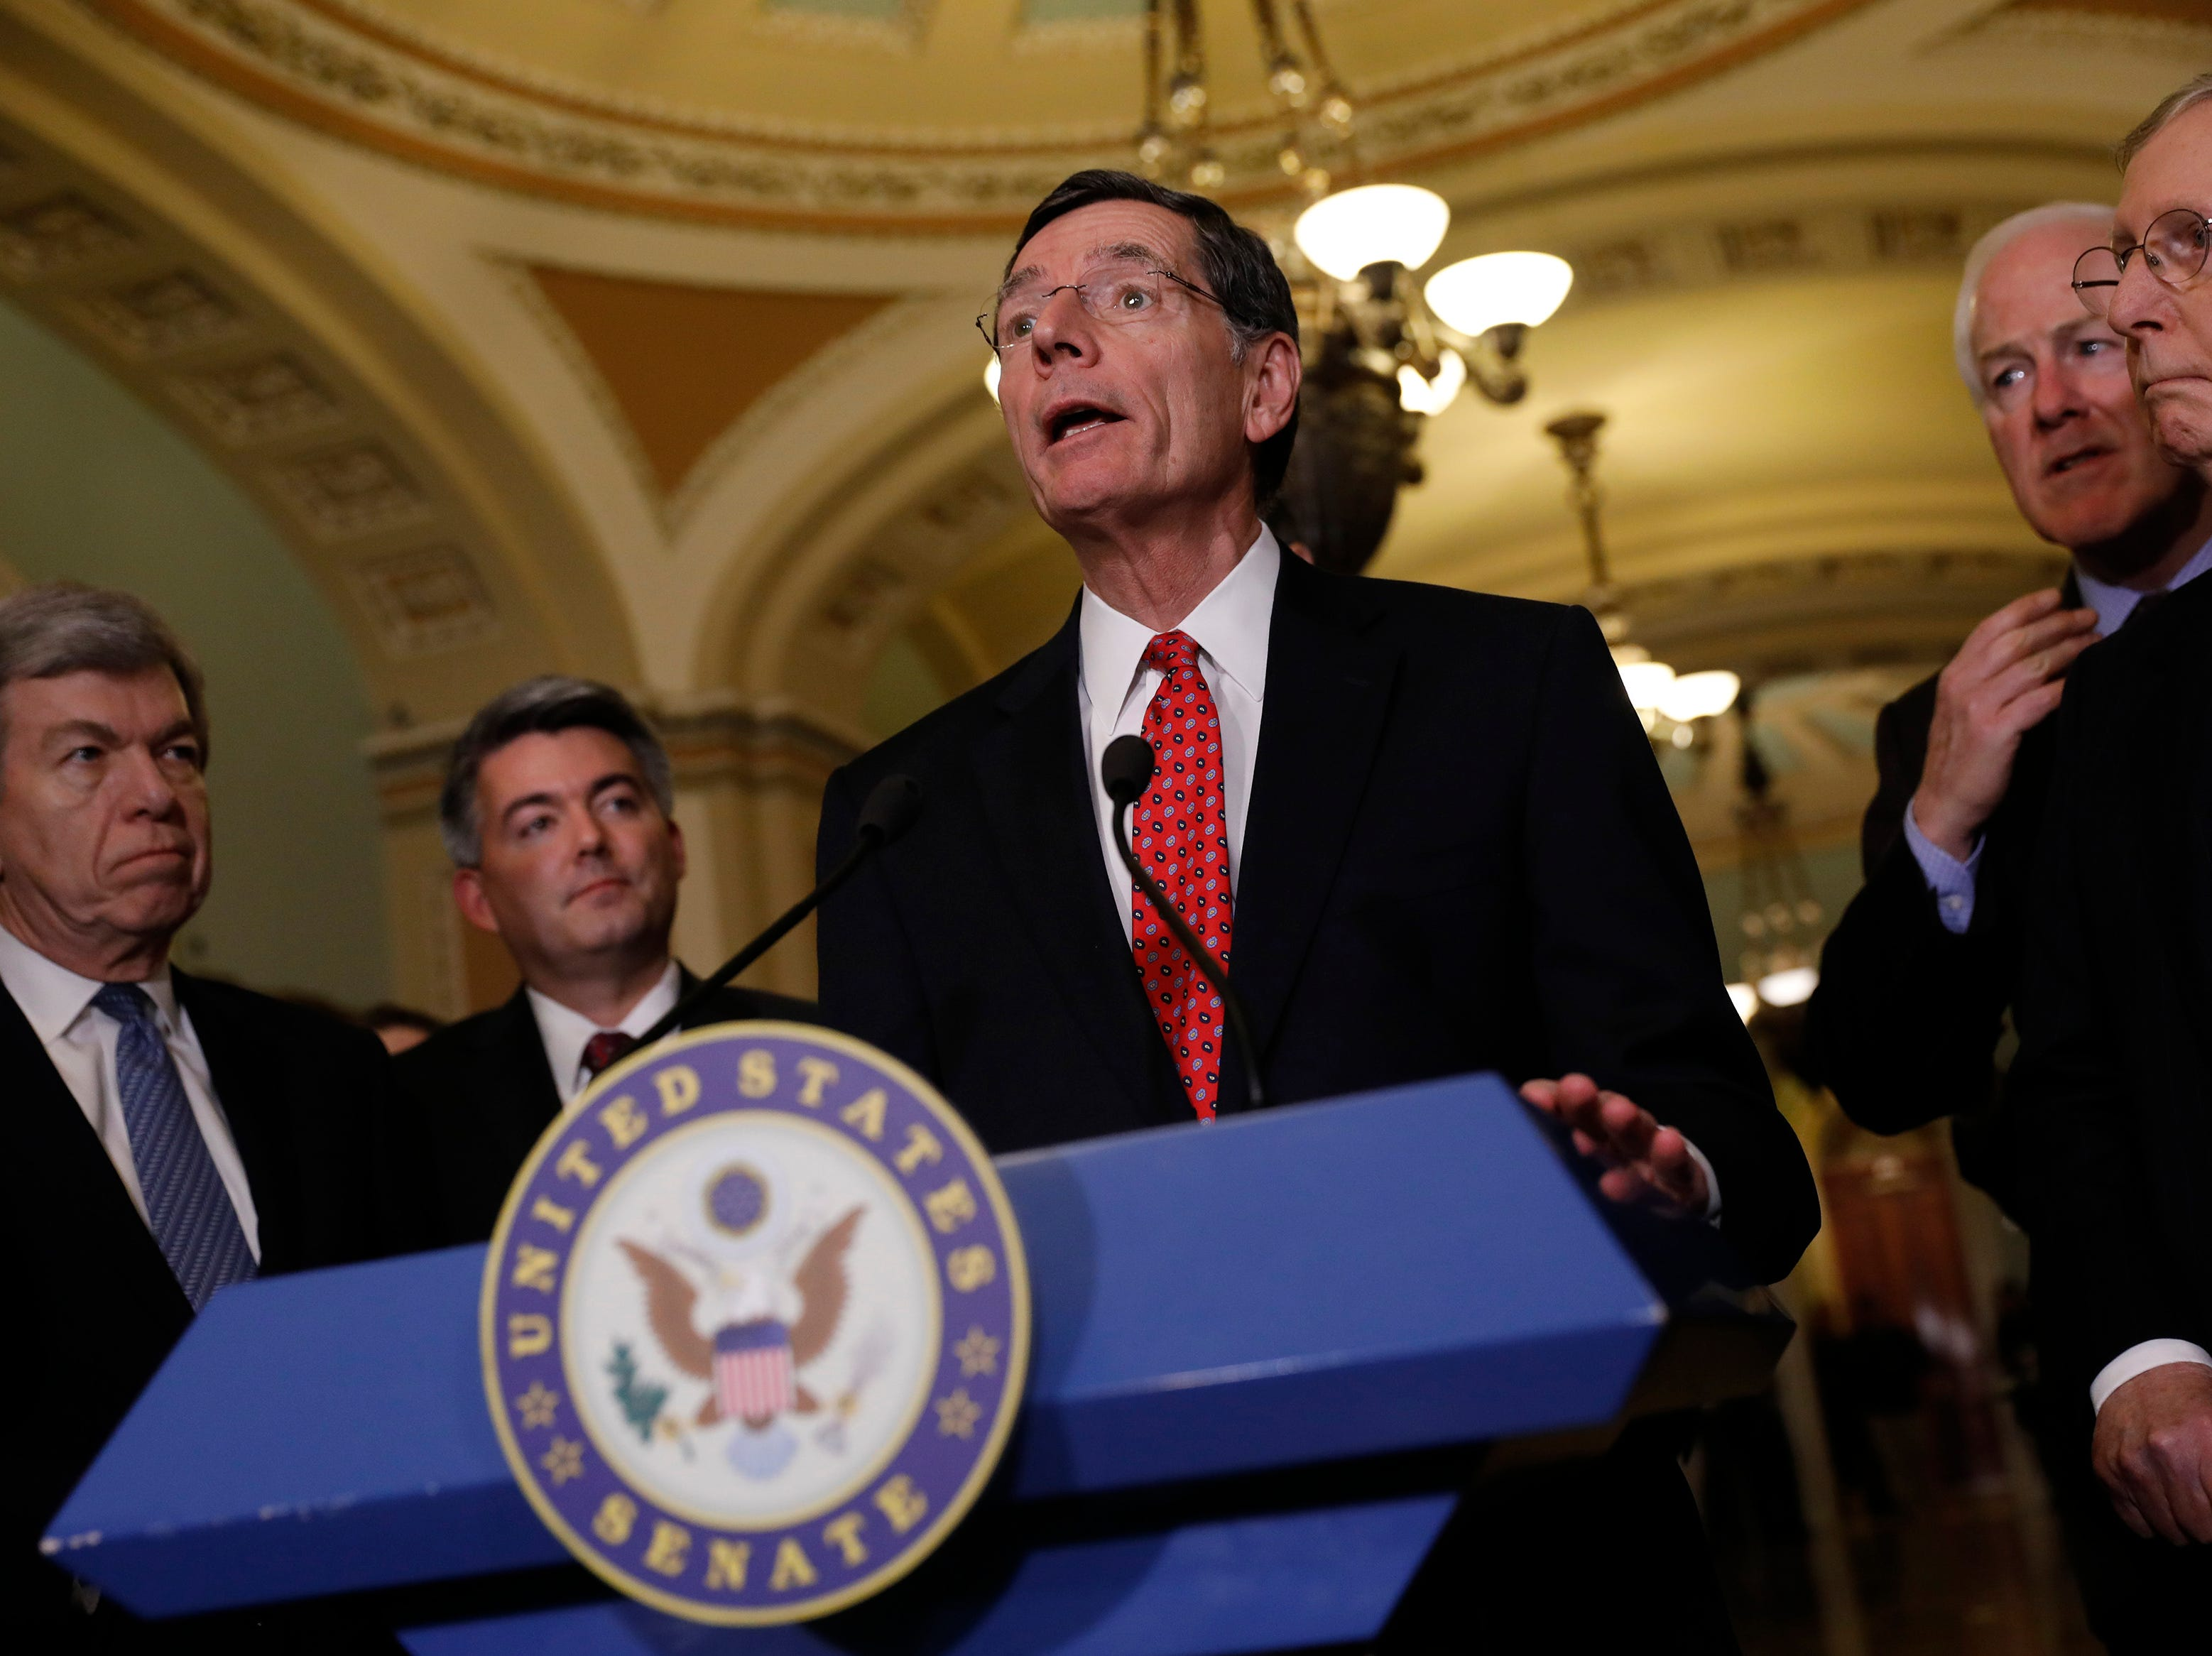 Sen. John Barrasso, center, is chairman of the Senate Committee on Environment and Public Works.